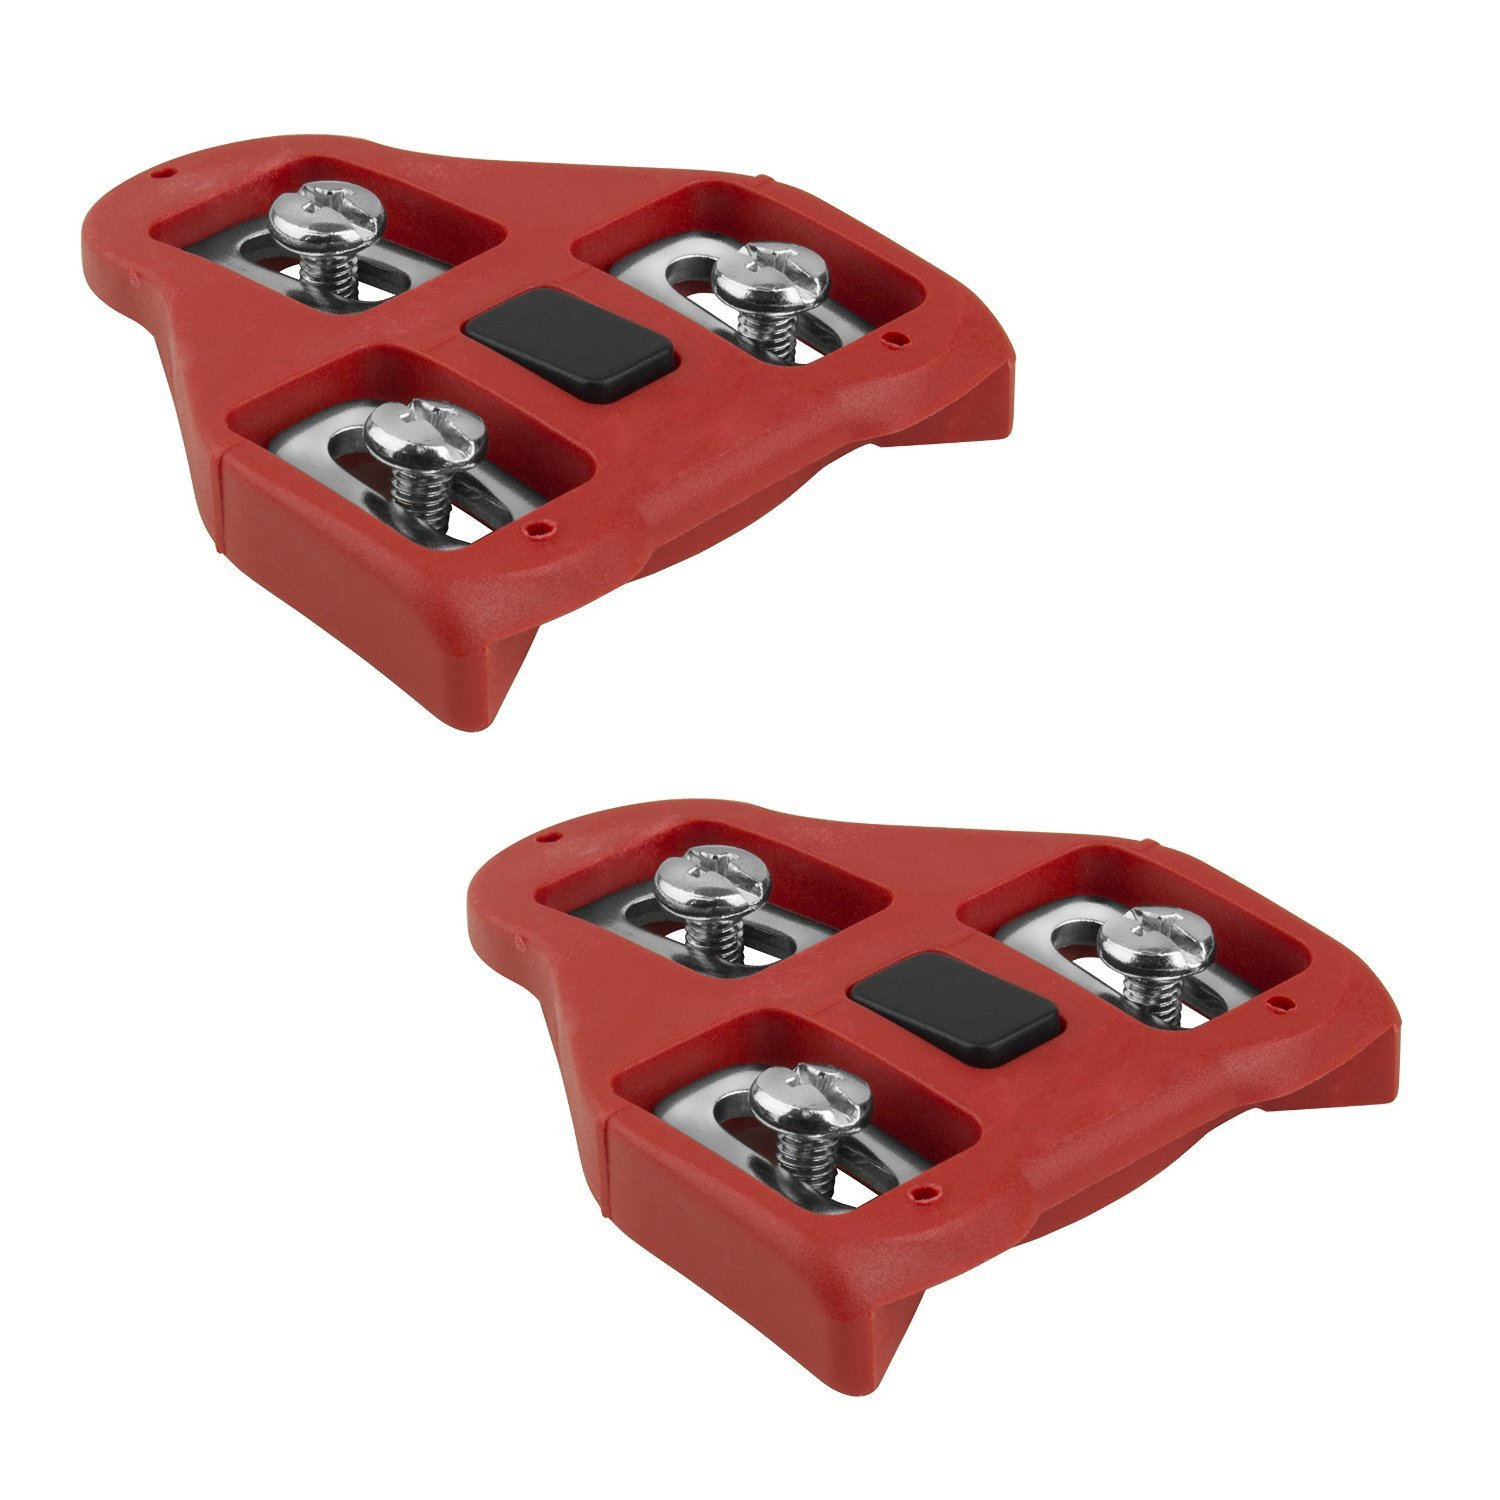 BV Bike Cleats Compatible with Look Delta (9 Degree Float) - Indoor Cycling & Road Bike Bicycle Cleat Set